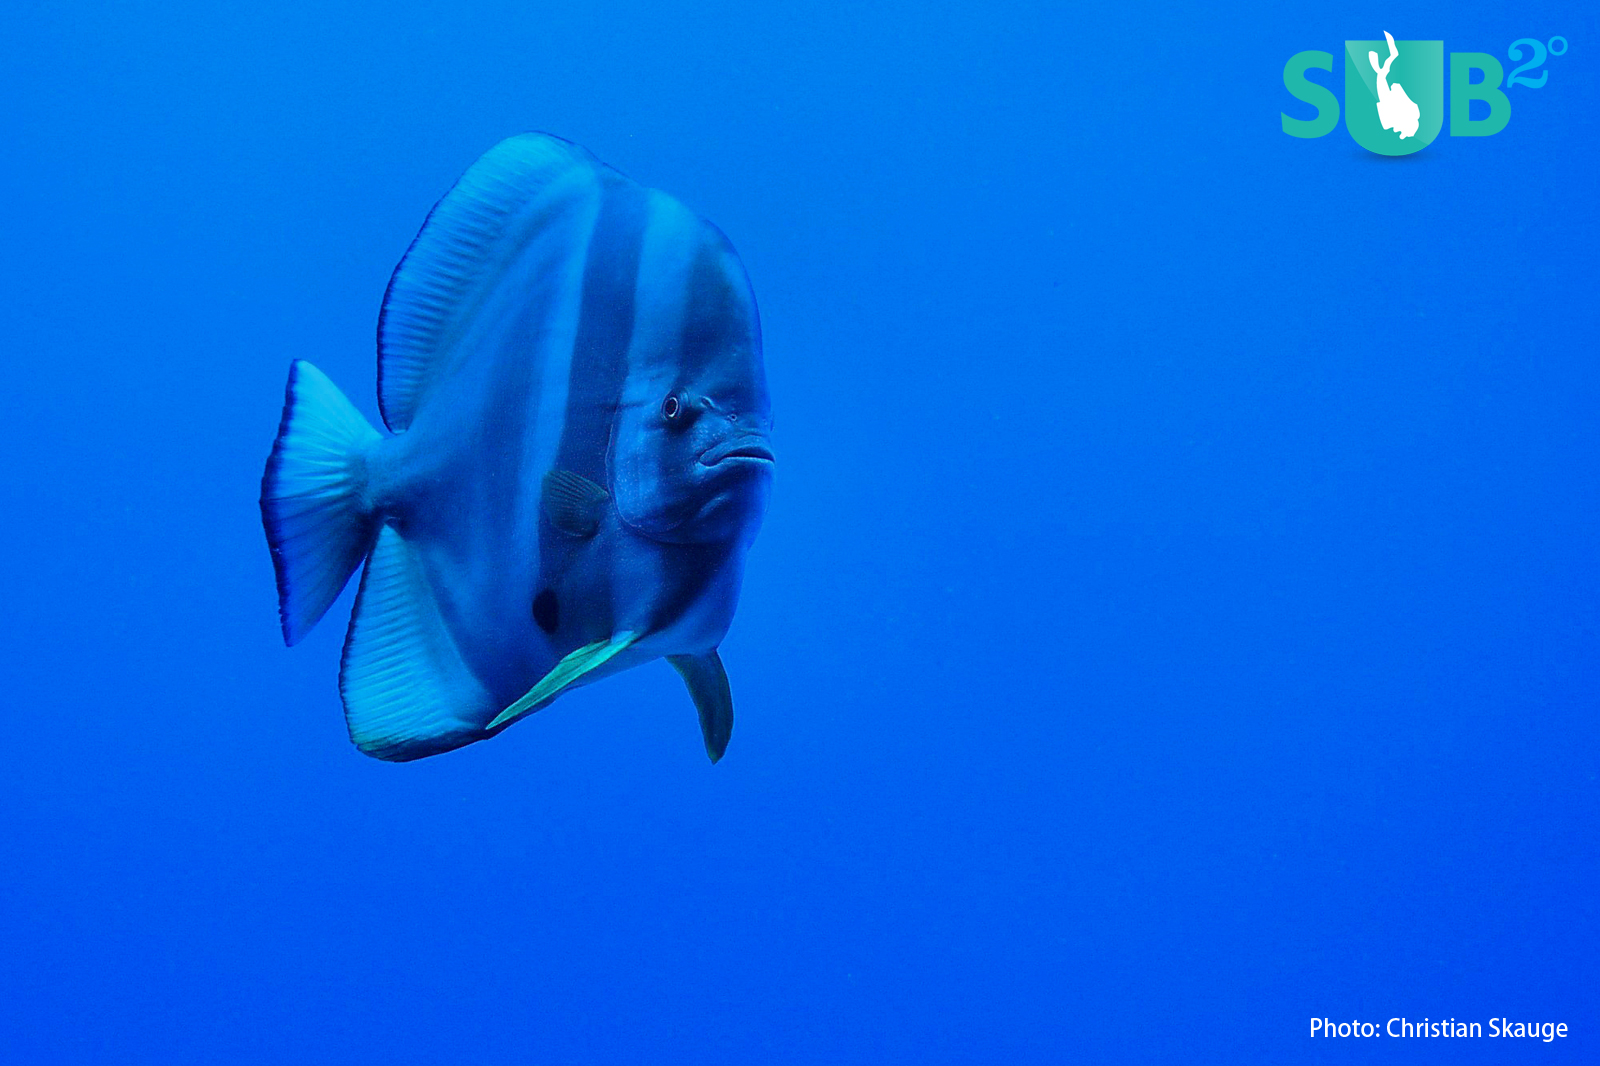 Without strobes, this batfish takes on an unmistakable blue hue.